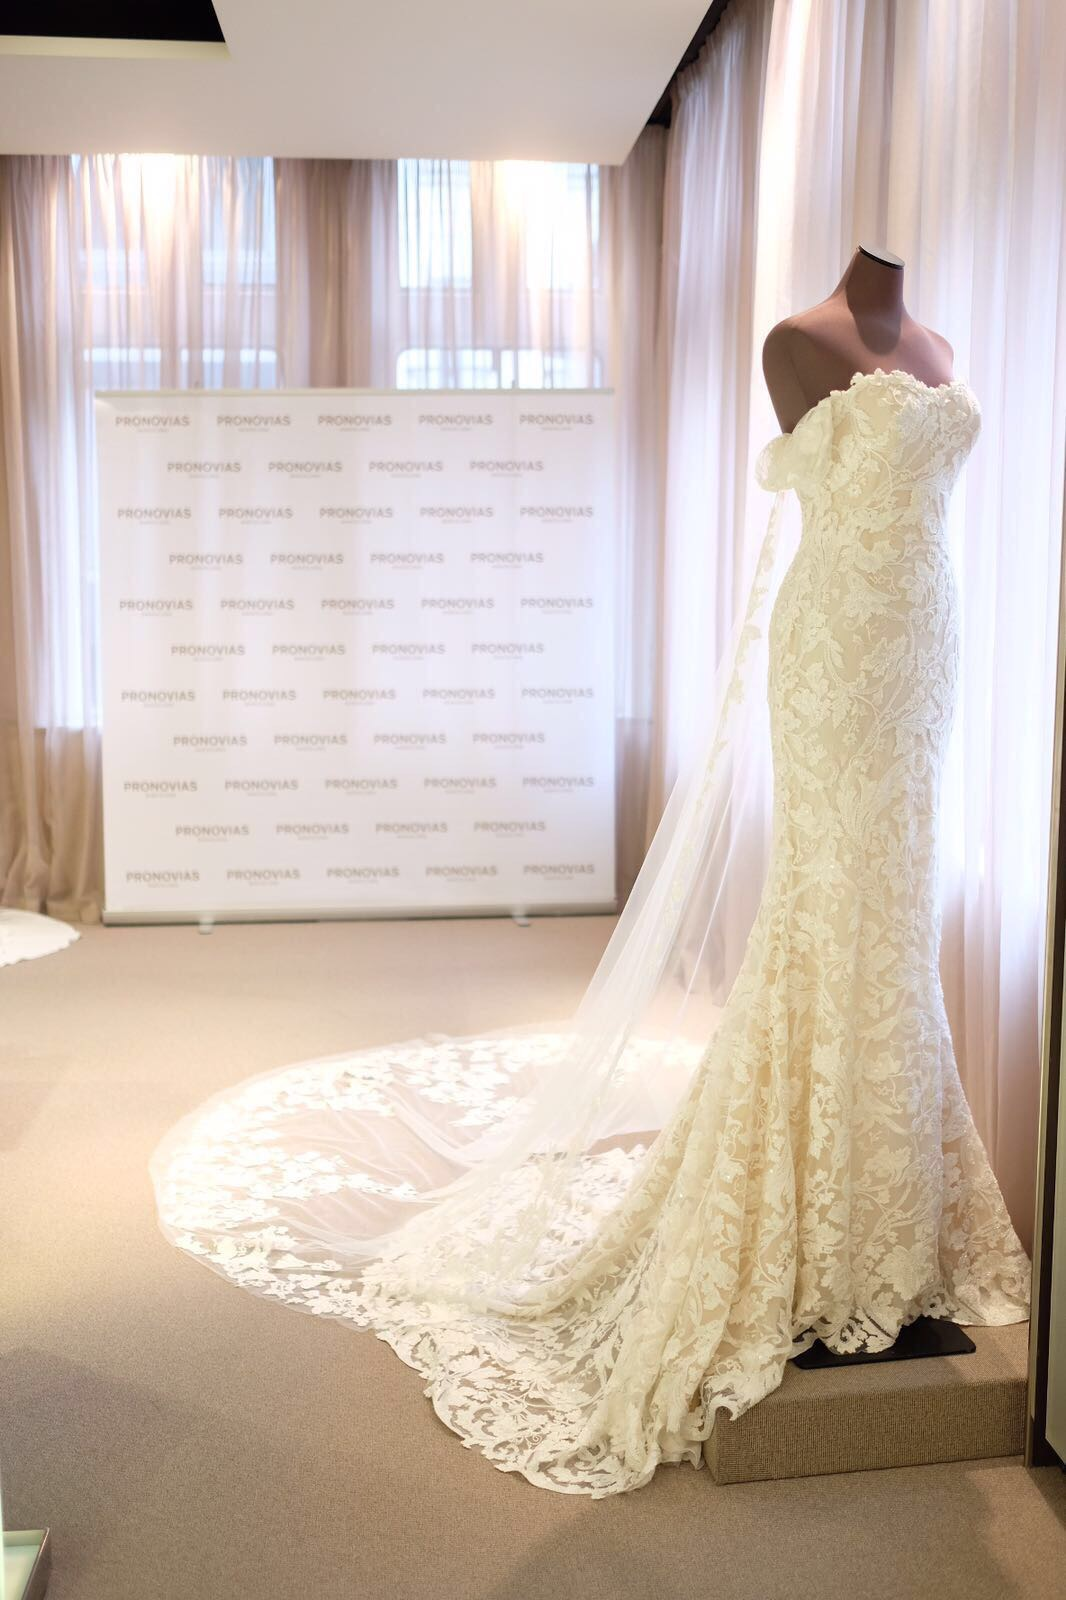 The 2018 Preview Collections From Pronovias (Bridal Fashion Fashion & Beauty Get Inspired )